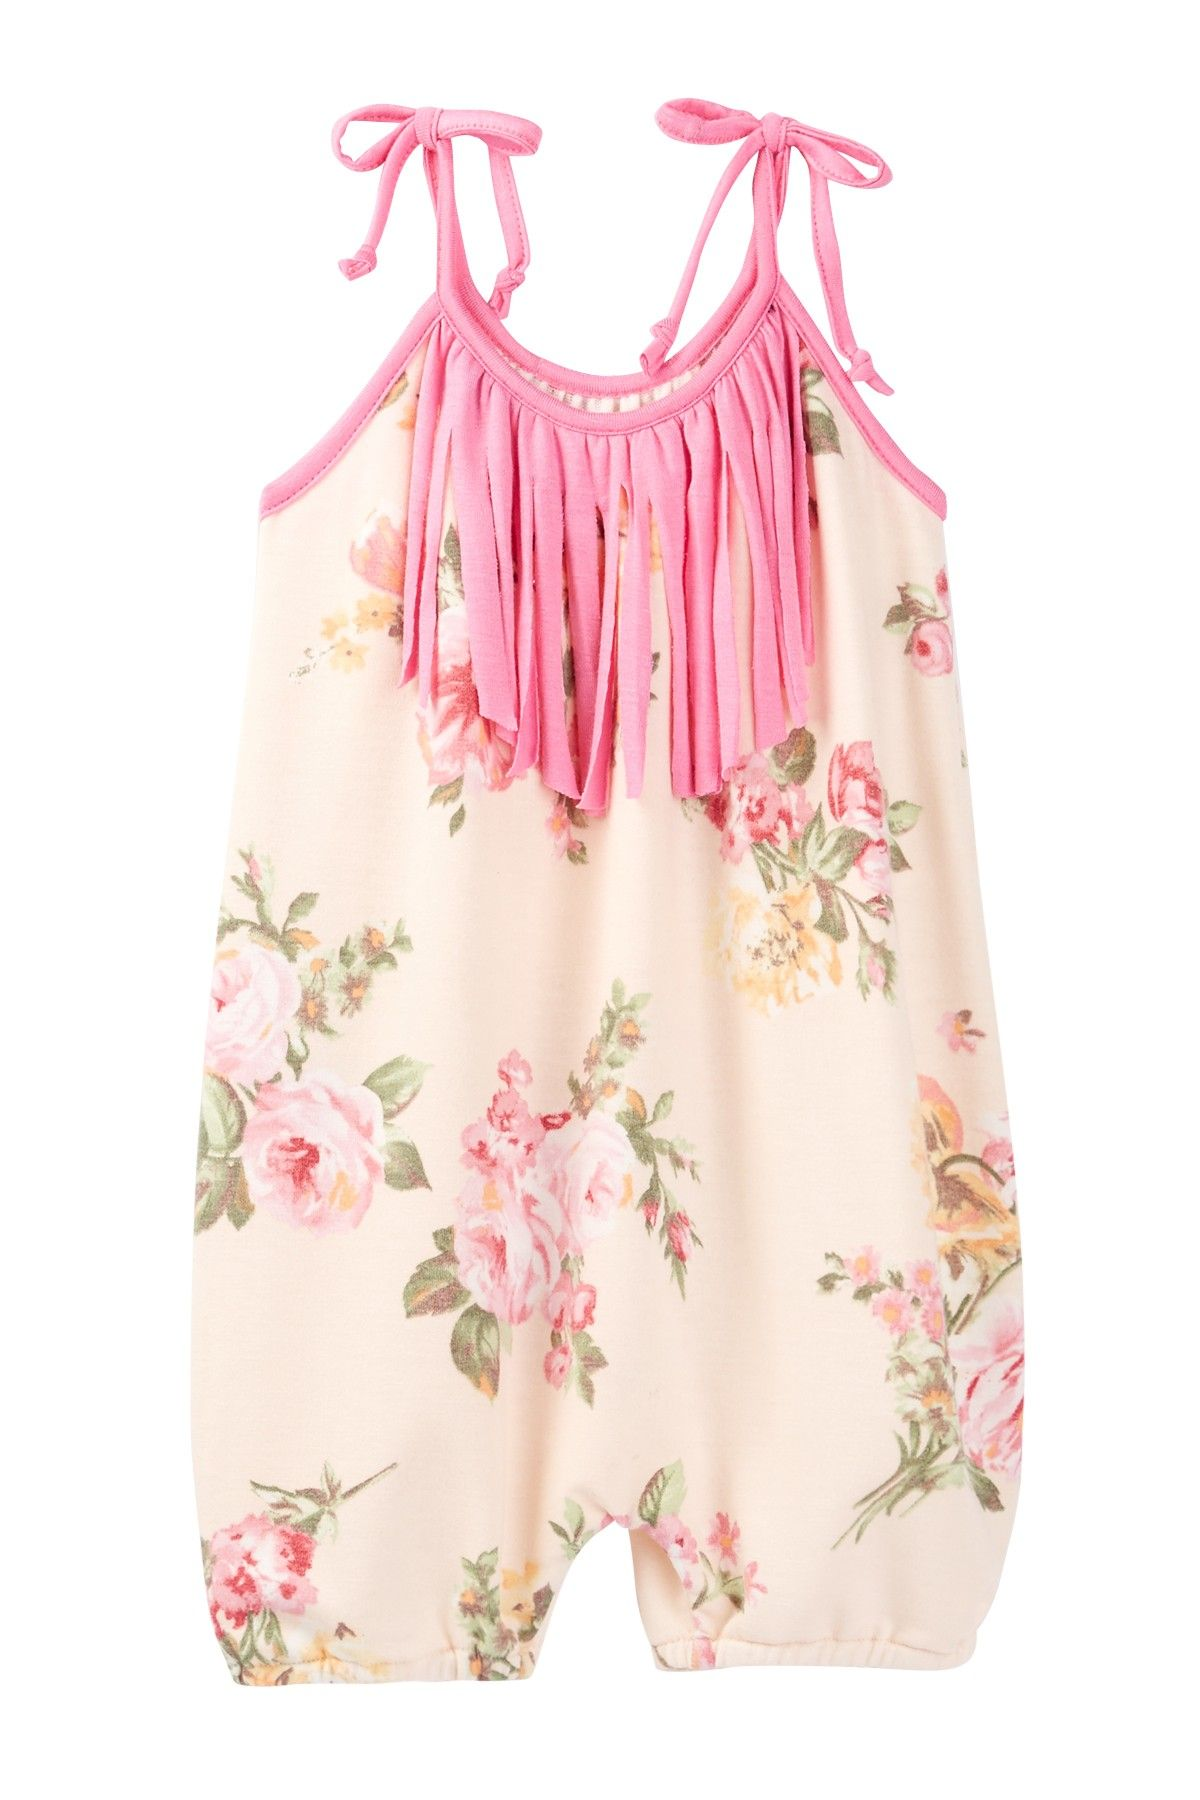 d0bbe430fbf6 Light Pink Floral Bubble Romper (Baby   Toddler Girls) by Million ...